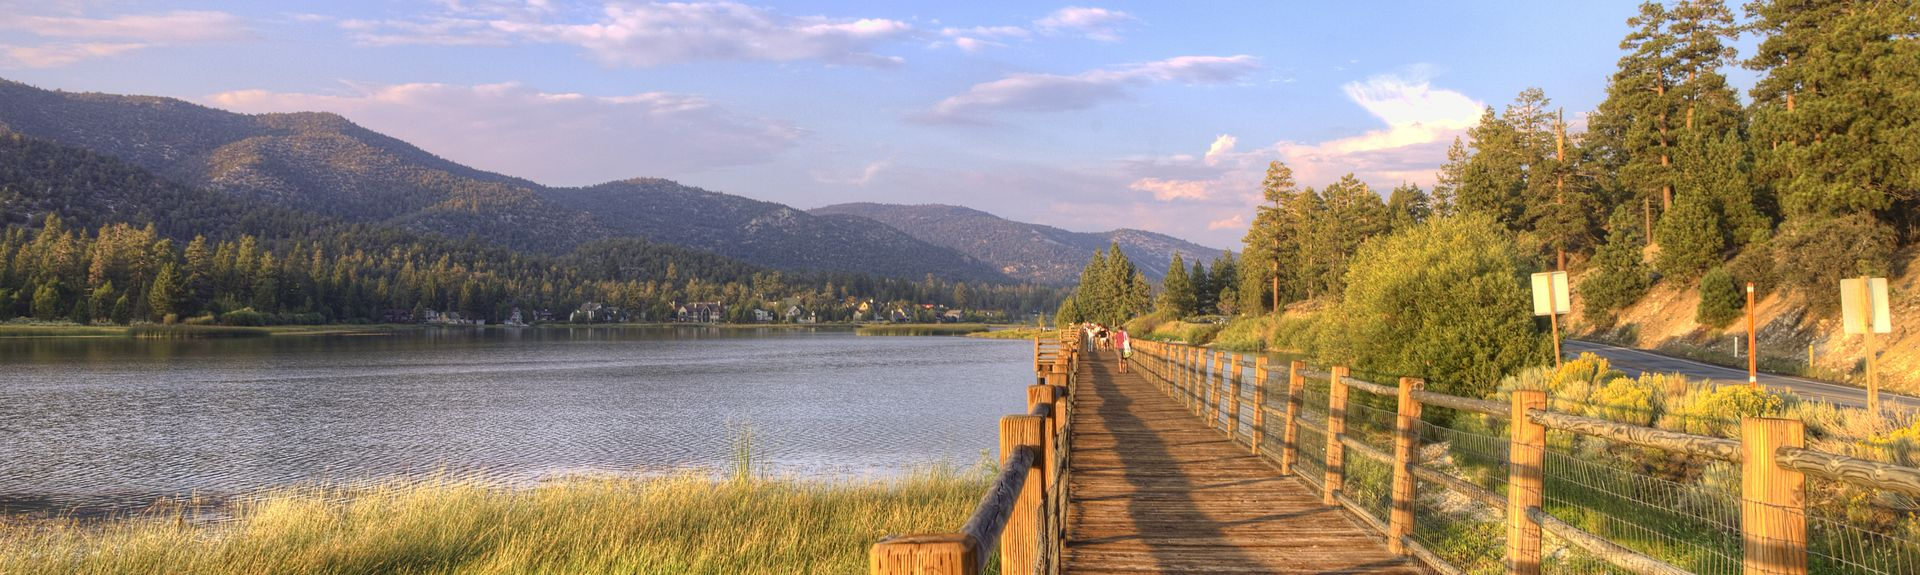 Big Bear Lake, California, Estados Unidos